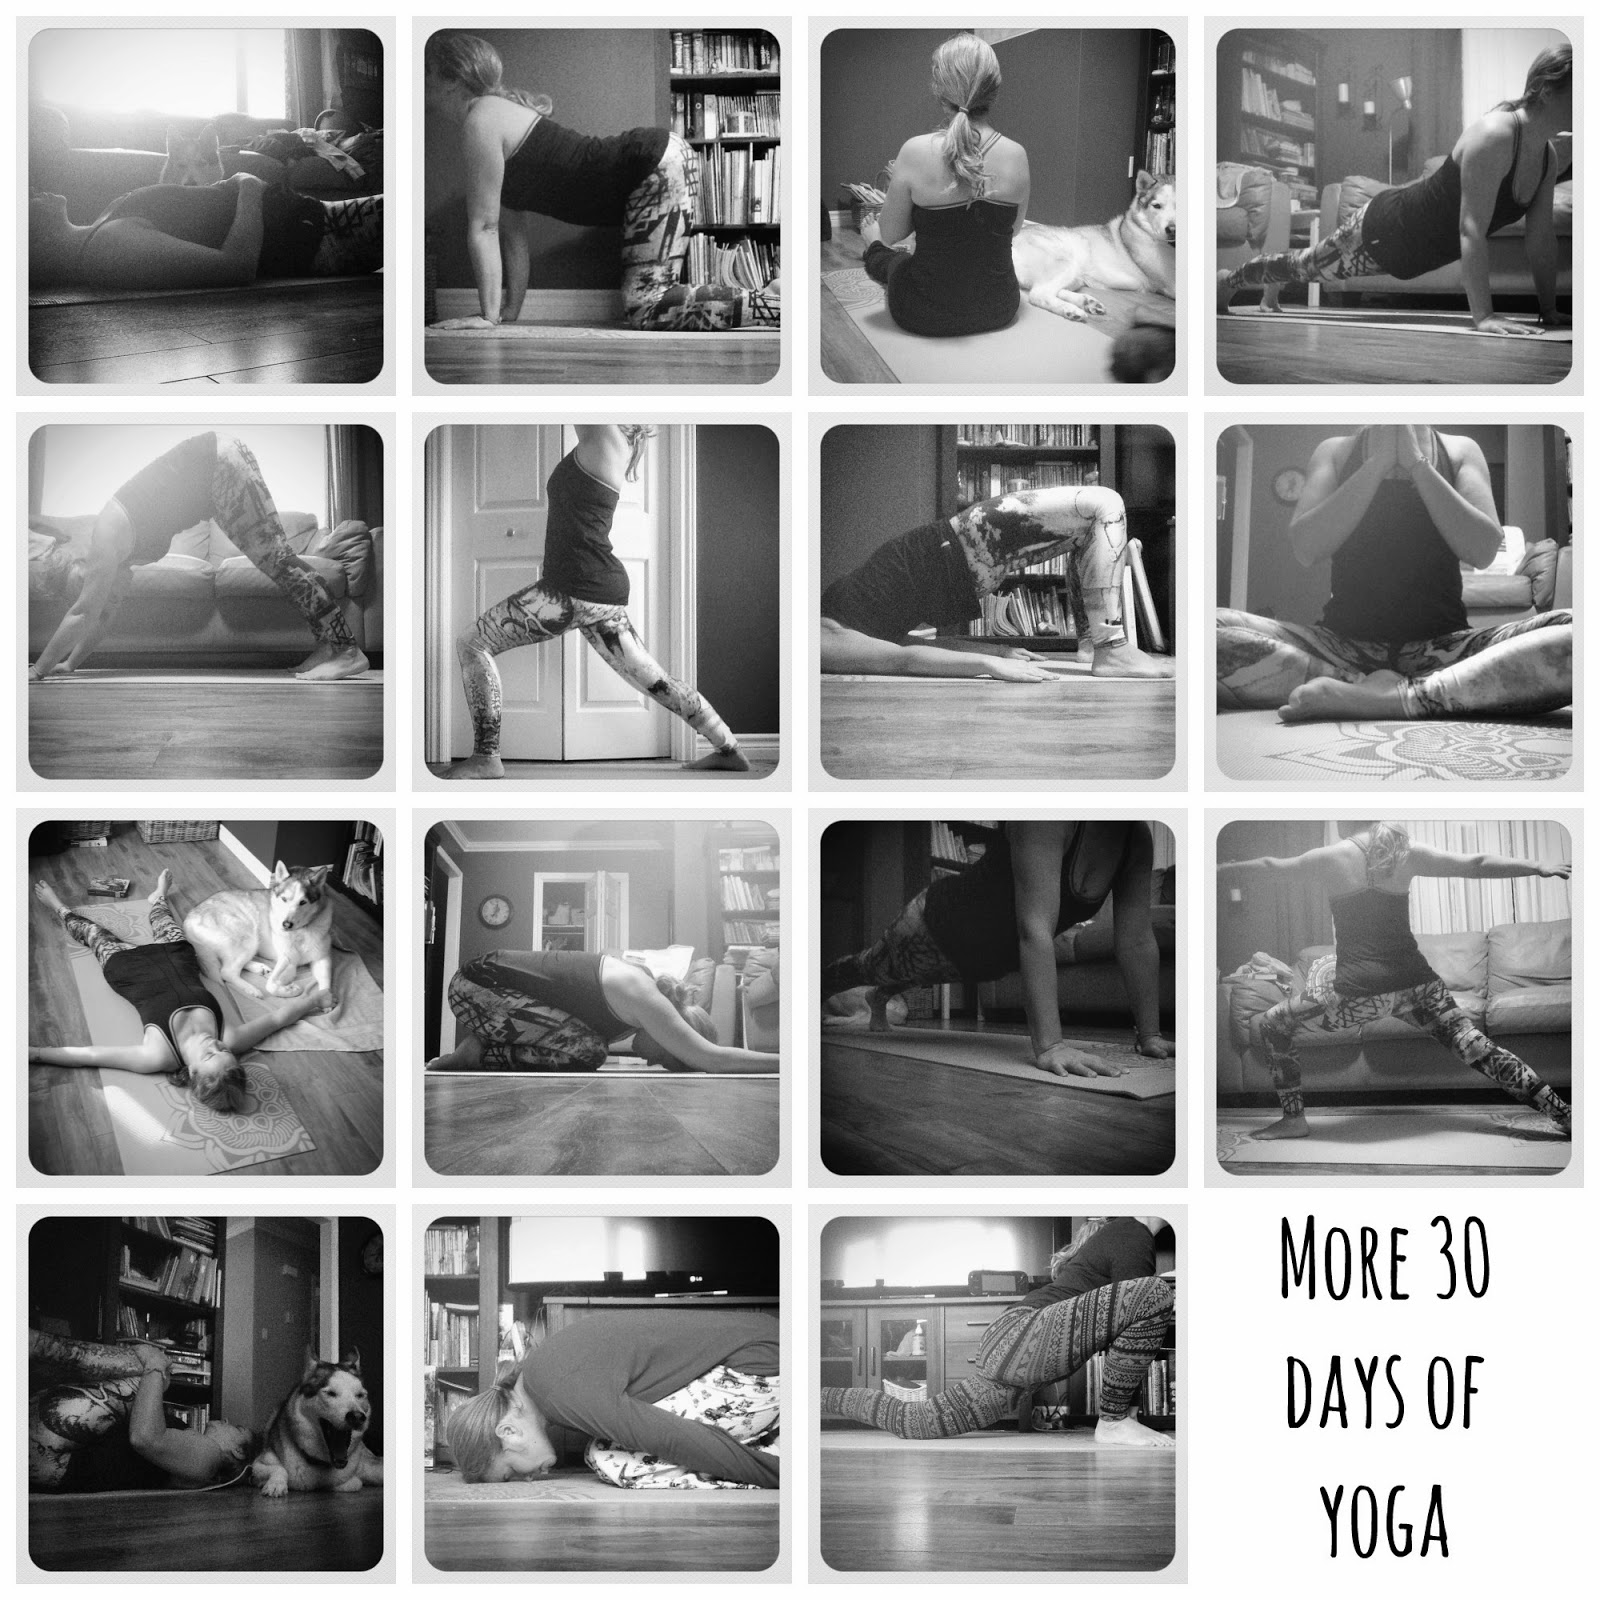 Yoga Every Day With Yoga With Adriene And More